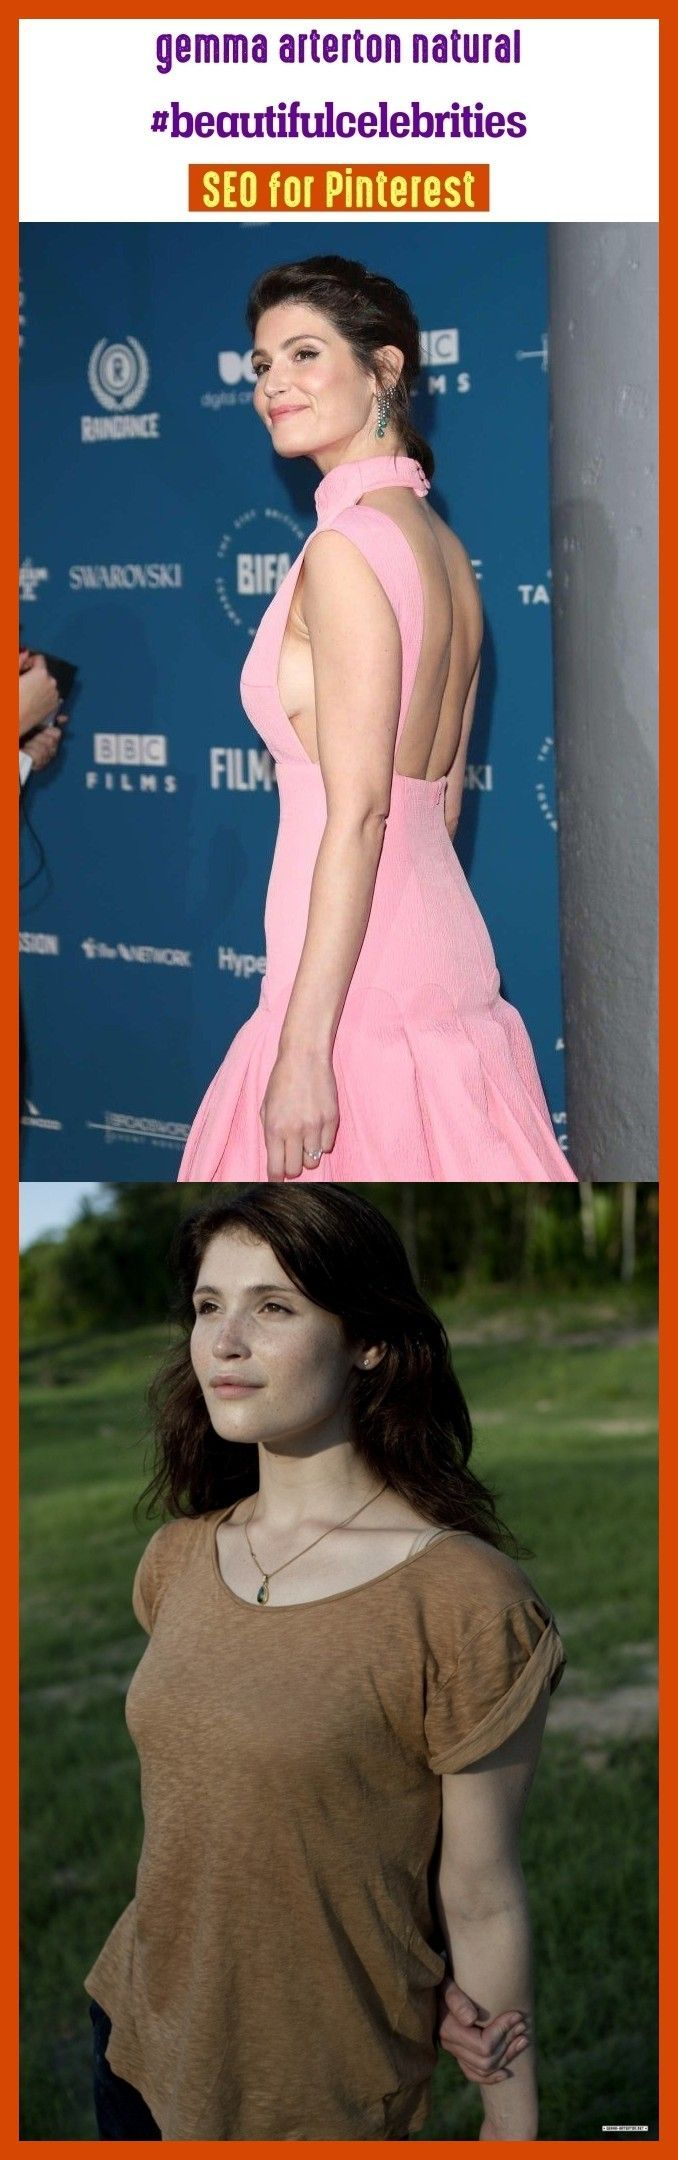 Gemma arterton natural #beautifulcelebrities #seotips #seo #celebs. gemma artert...  Gemma arterton natural #beautifulcelebrities #seotips #seo #celebs. gemma arterton prince of persia, gemma arterton hairstyles, gemma arterton game of thrones, gemma arterton style, gemma arterton gretel, g The Effective Pictures We Offer You About 90s Actresses  A quality picture can tell you many things. You can find the most beautiful pictures  #artert #Arterton #beautifulcelebrities #celebs #Gemma #natural